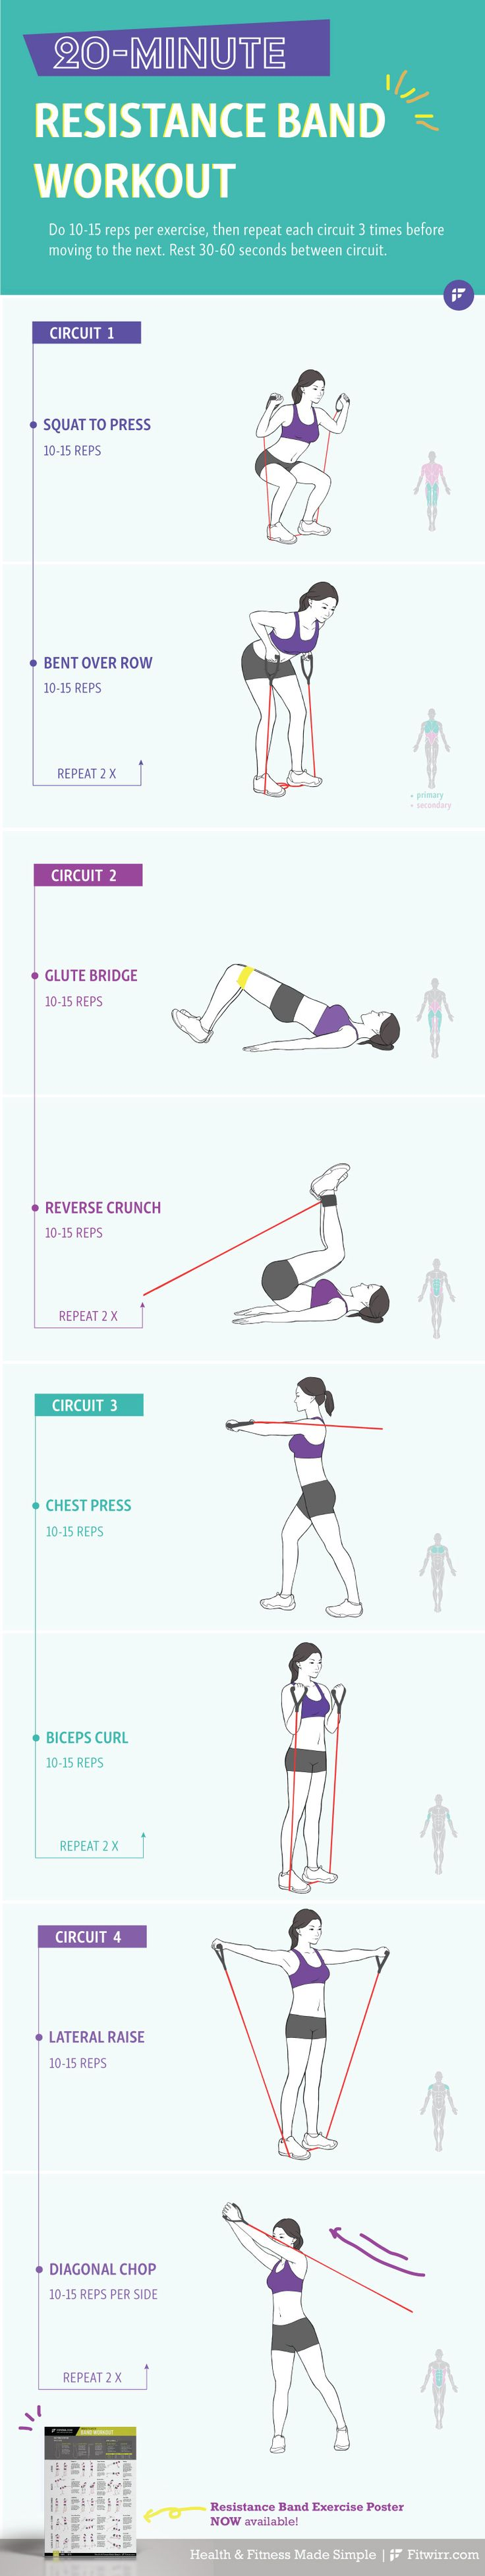 20-Minute Resistance Band Workout